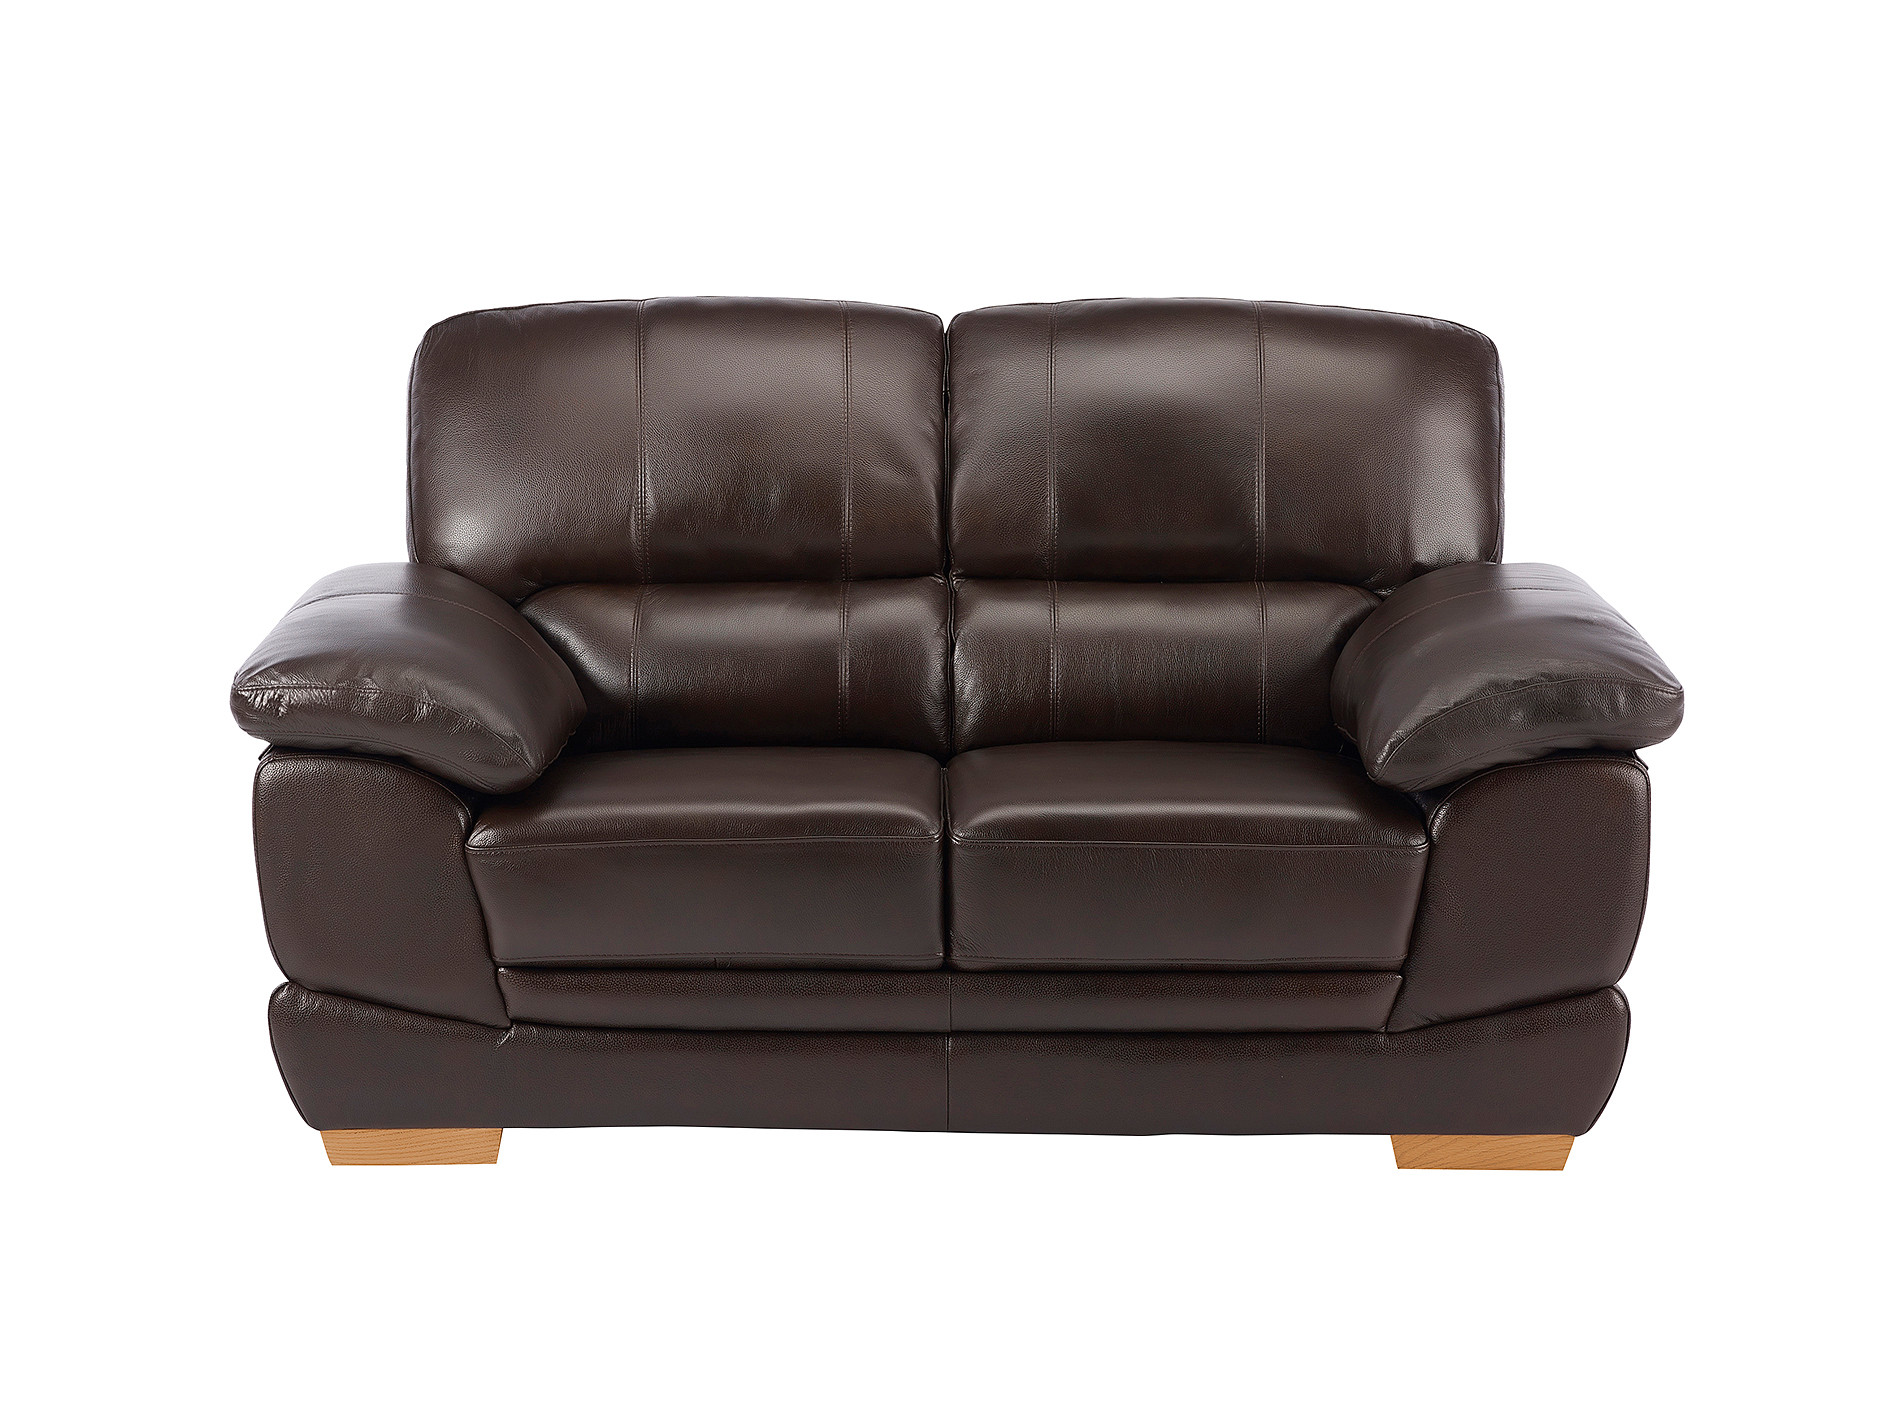 Cameron Brown Leather 2 Seater Sofa